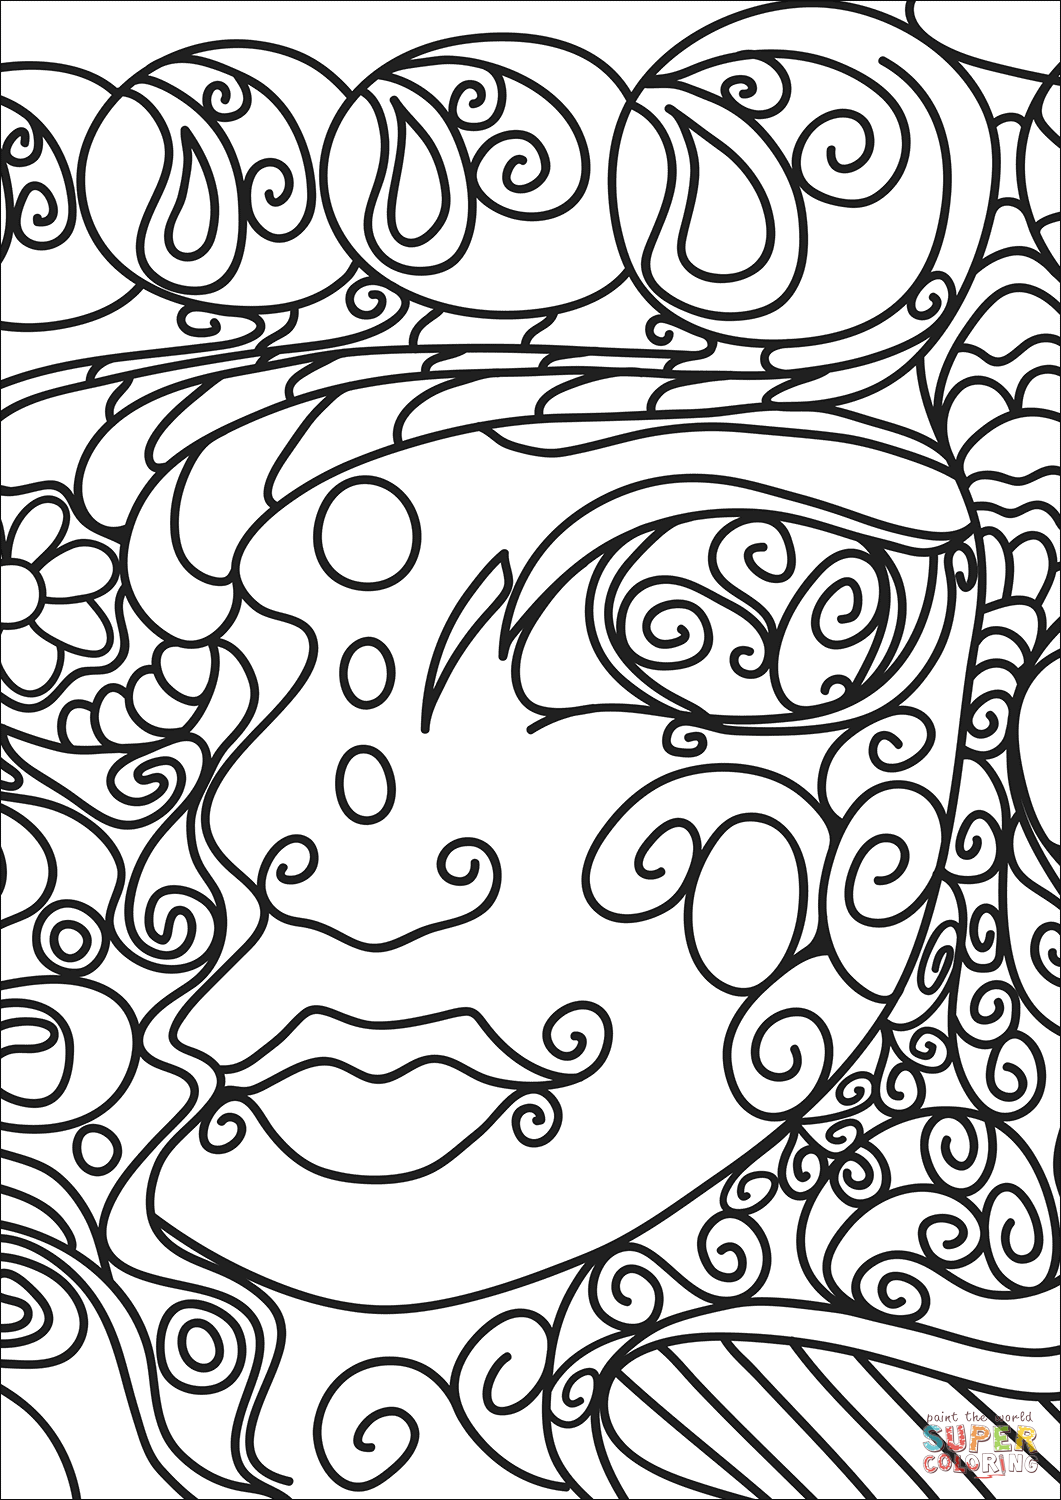 free doodle art to print and color 25 excellent picture of doodle coloring pages birijuscom and art to doodle print free color